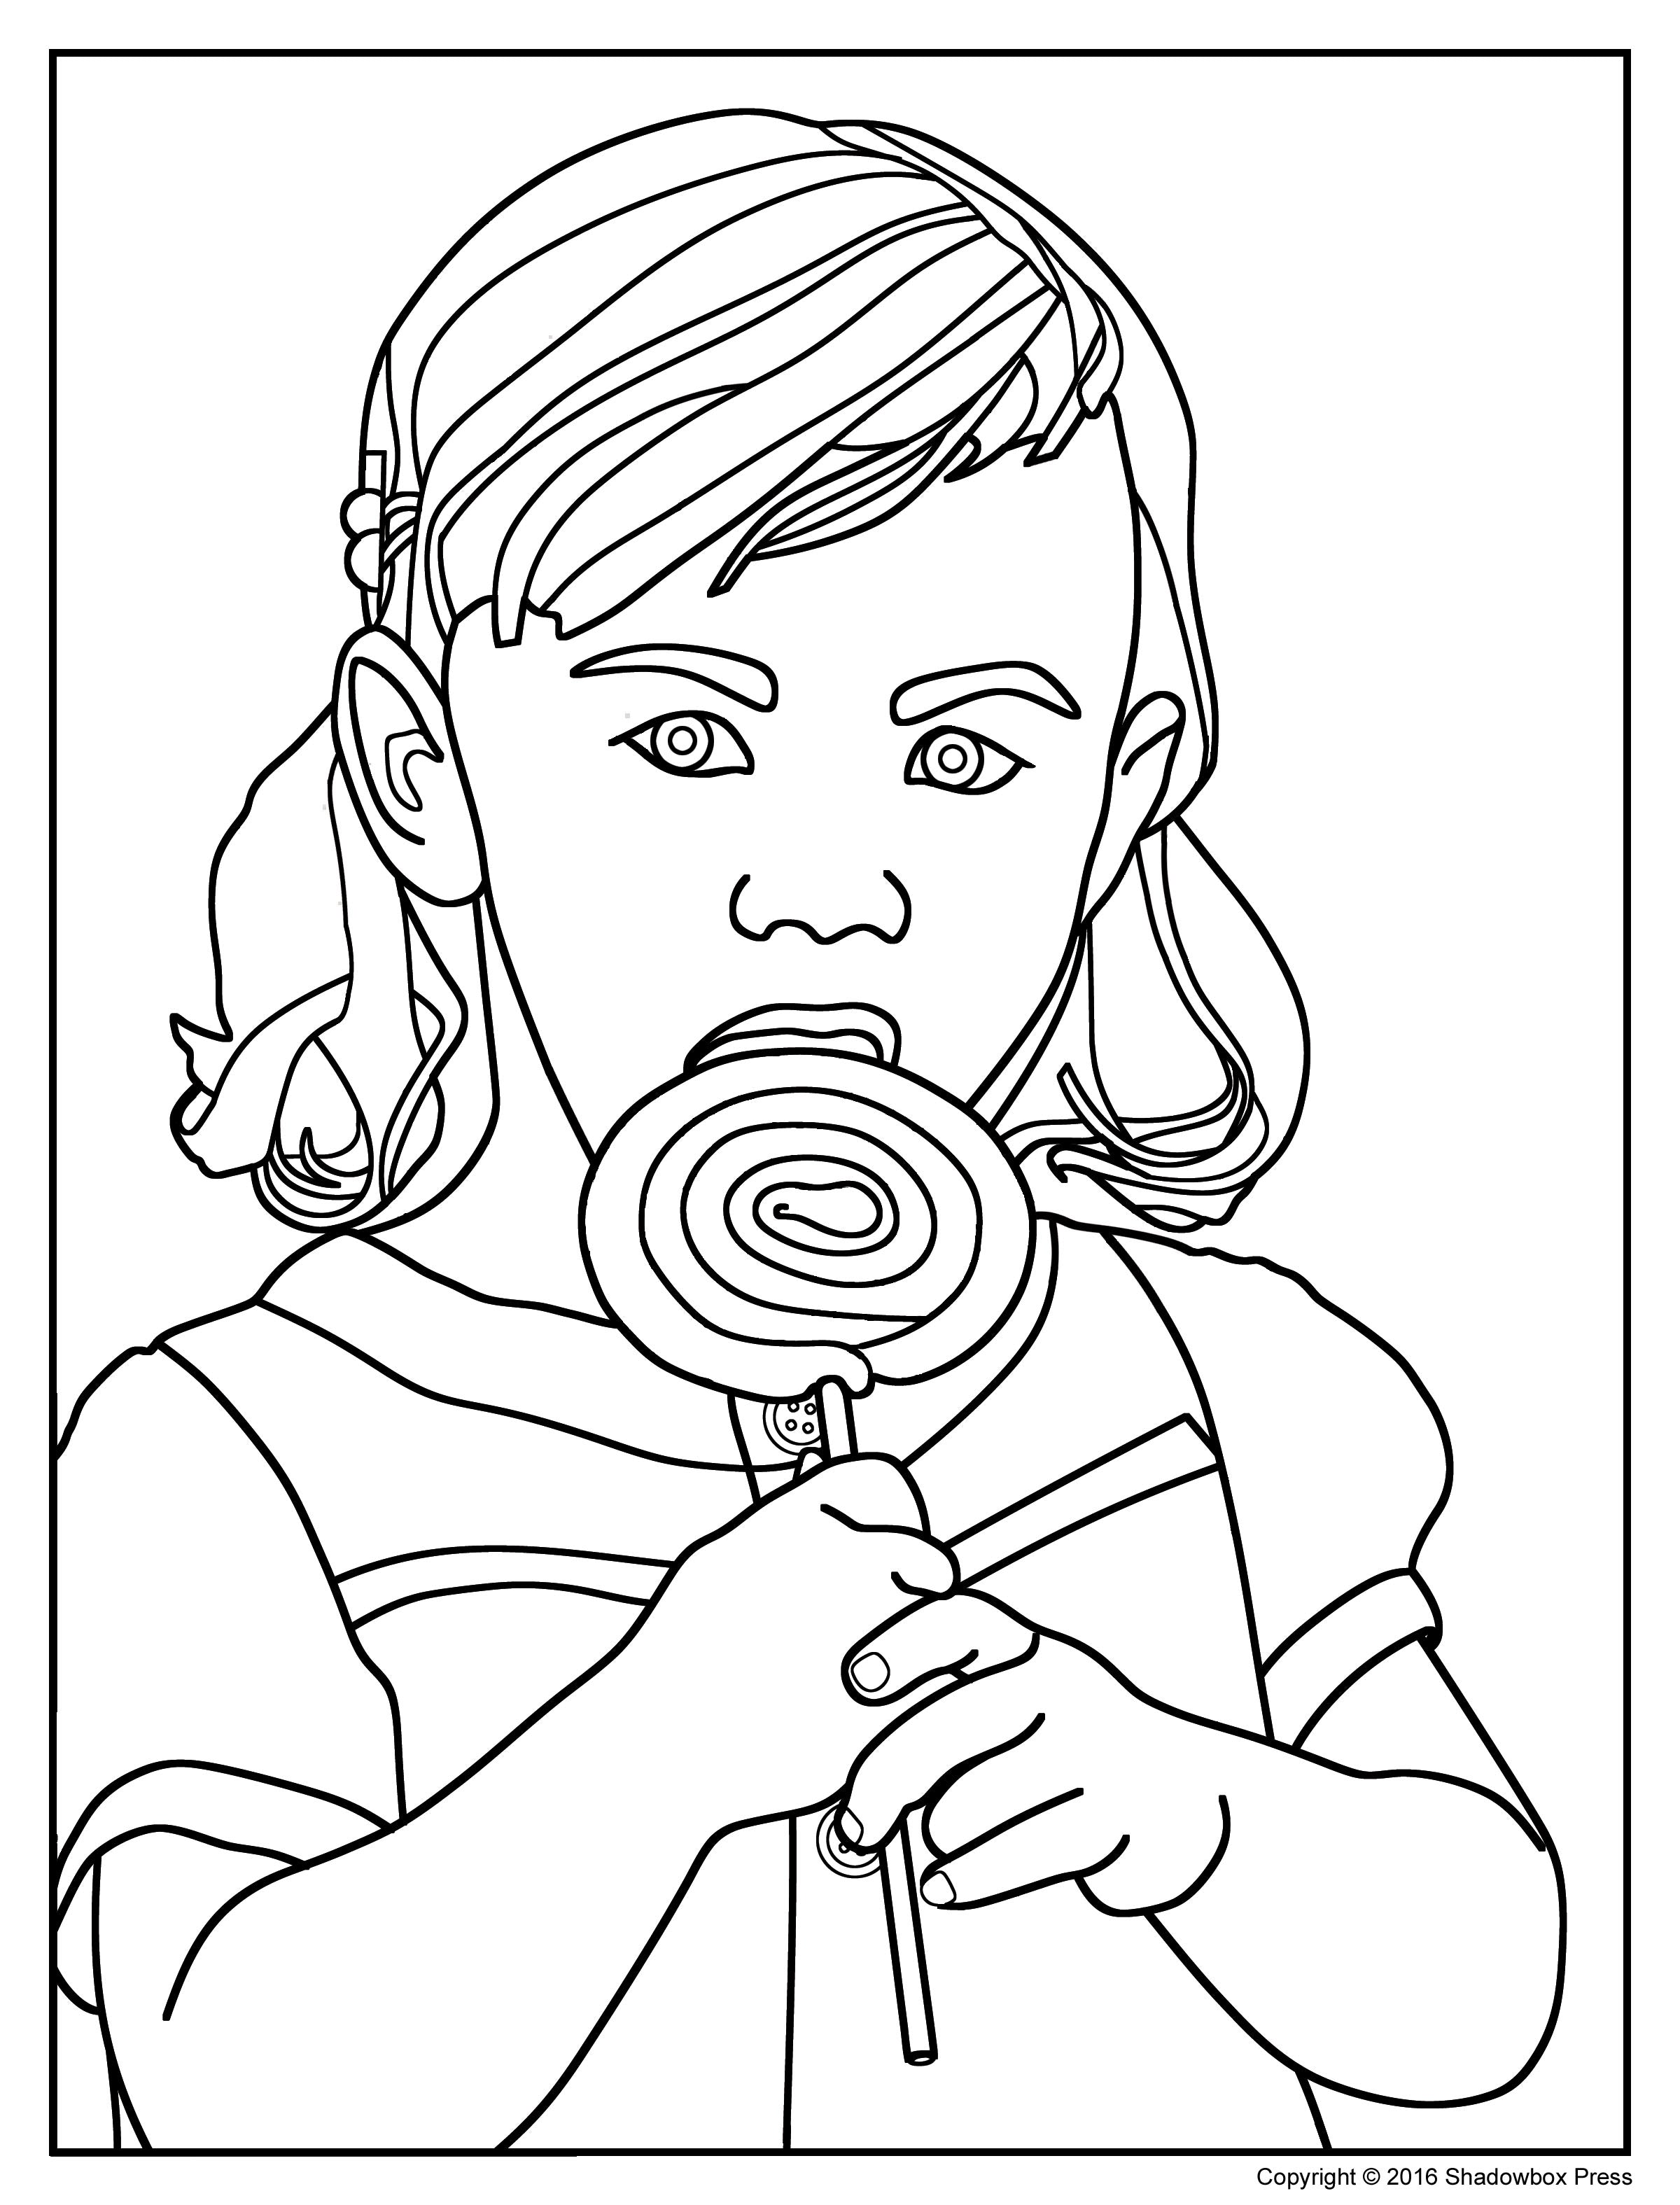 Printable Coloring Pages For Dementia : Pages For Dementia Patients Coloring Pages